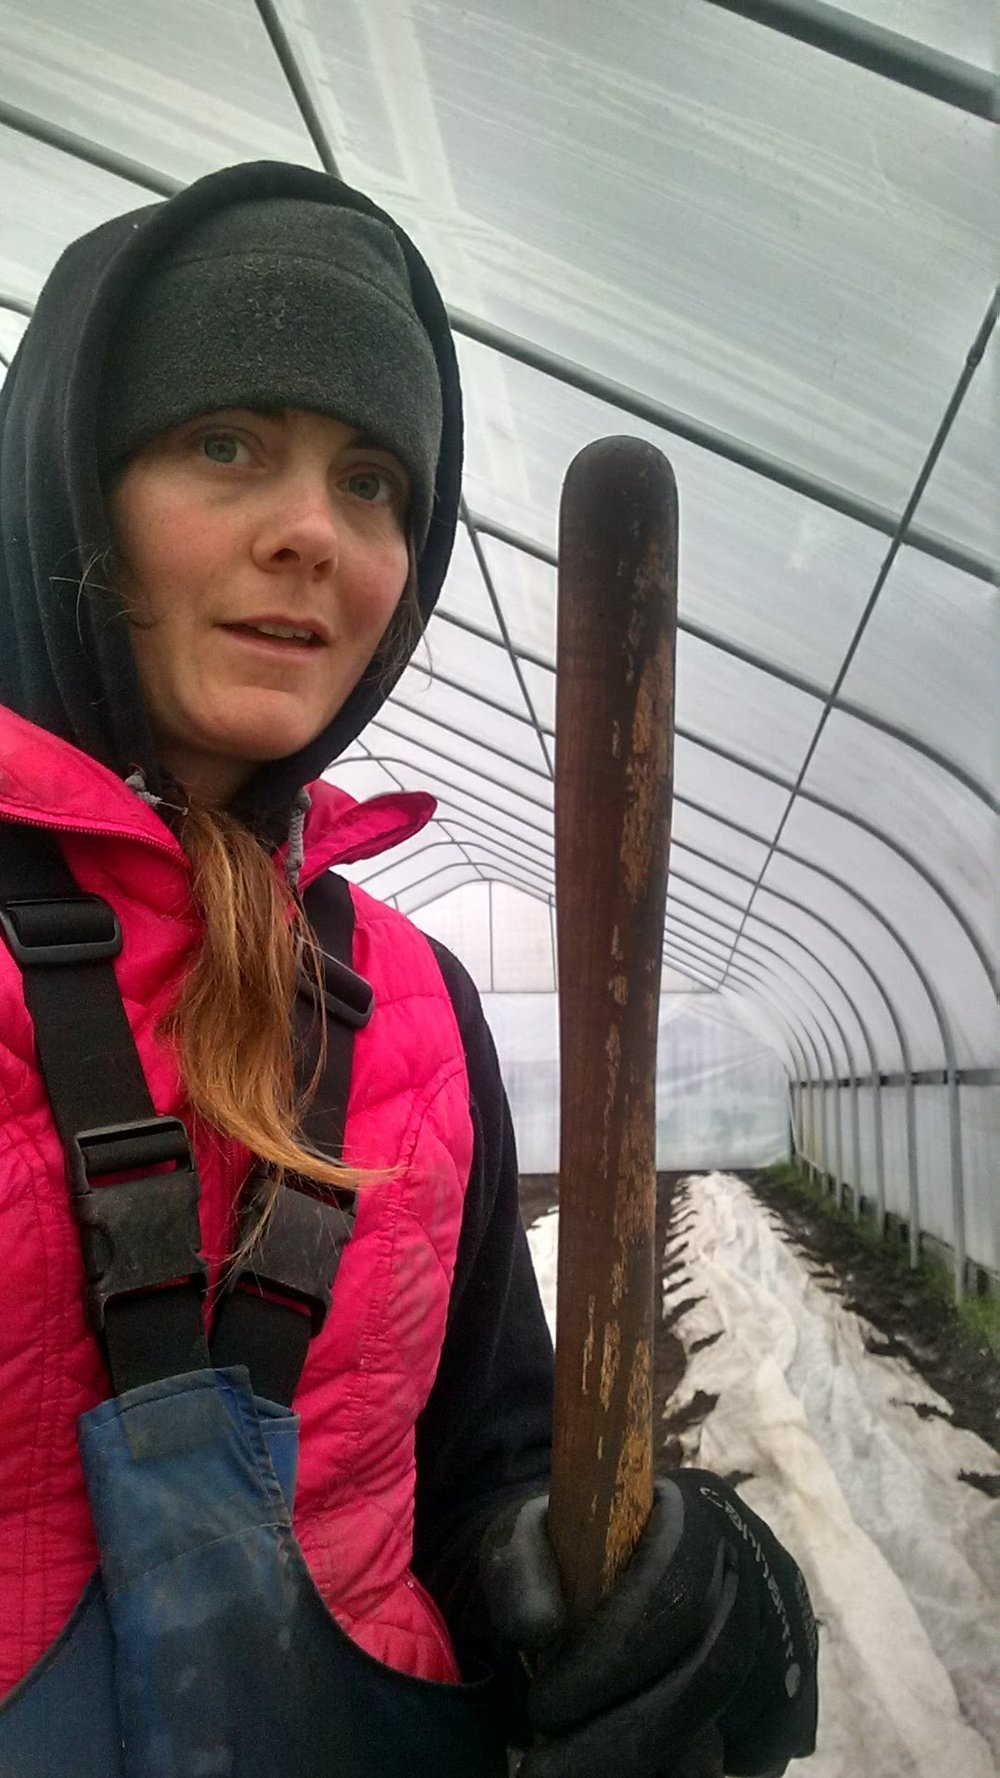 Row covering cucumbers in the high tunnel to keep us all warm